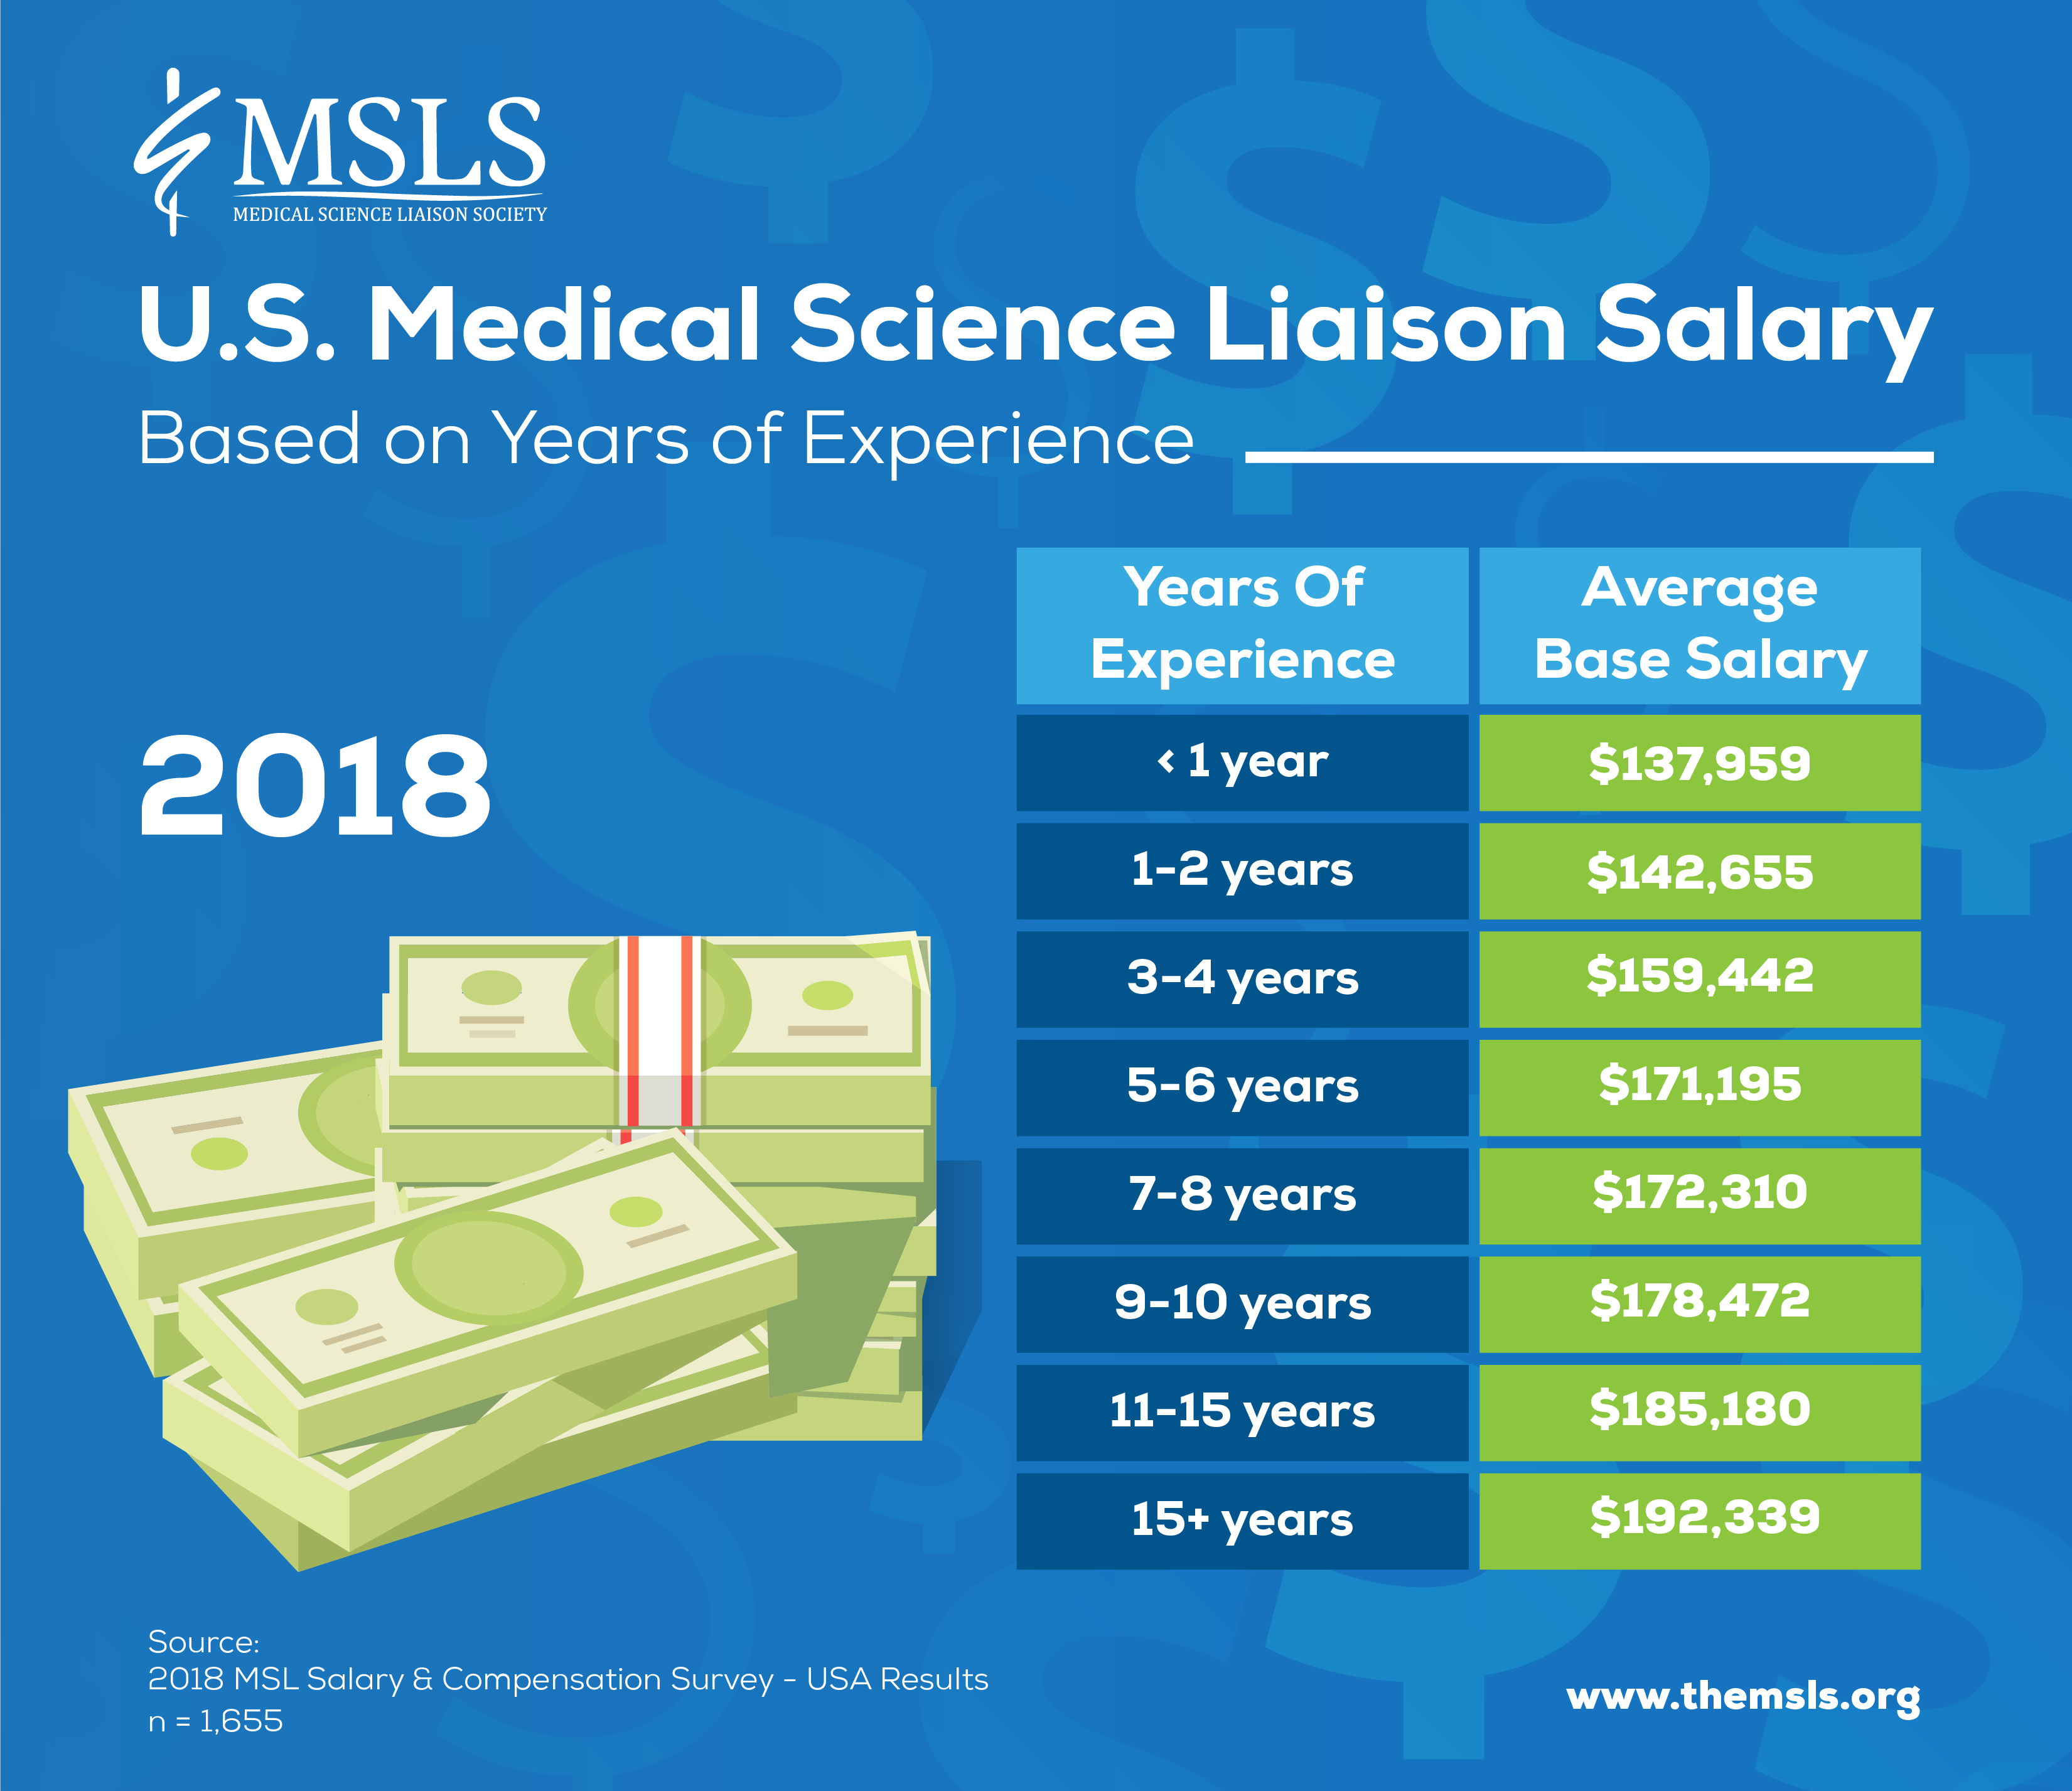 Medical Science Liaison Salary & Compensation - MSL Society